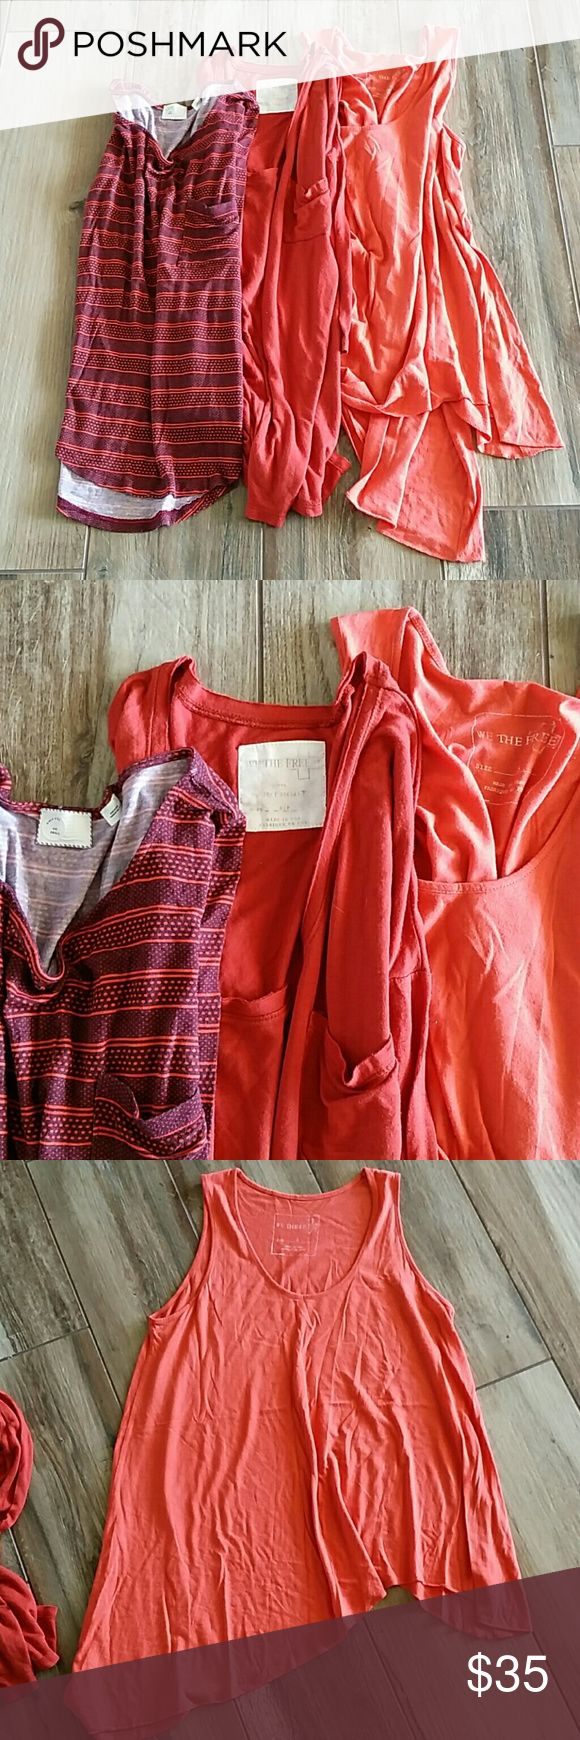 BUNDLE OF 3❤FREE PEOPLE ❤ ANTHROPOLOGIE Size small One orange Asymmetric tank- euc gently worn, no issues We The free project social tee in burnt orange - euc gently worn no issues Anthropologie Postmark Cotton 3/4 sleeve top   Bundled together not selling separate. Free People Tops